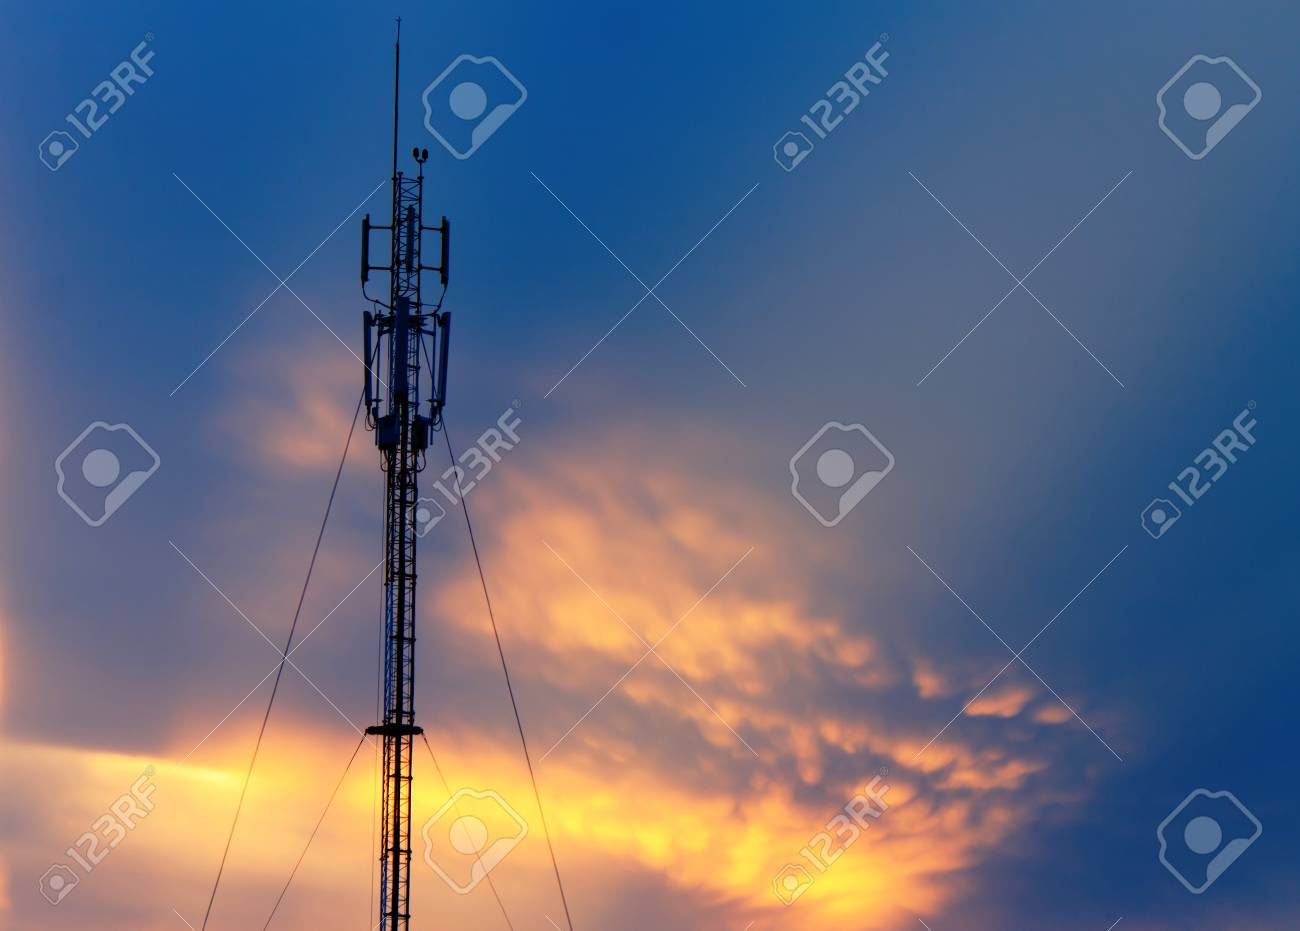 antenna has a sky background with sun rays are shining up into the sky Stock Photo - 14574644